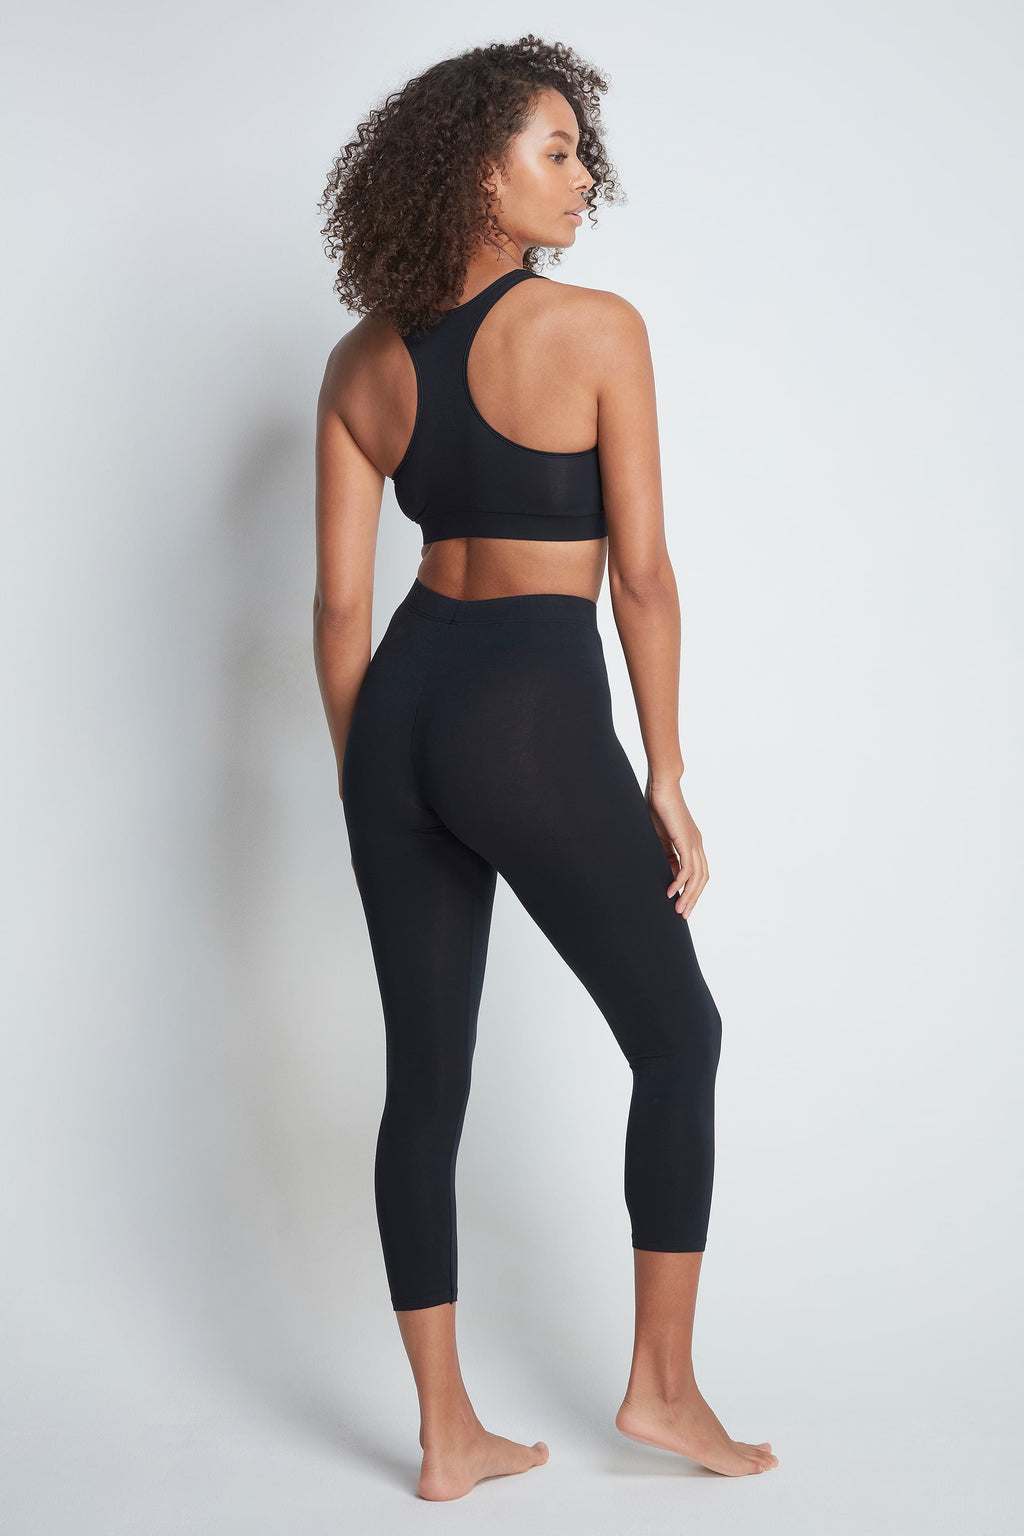 Cropped Black Leggings Trousers / Leggings Lavender Hill Clothing